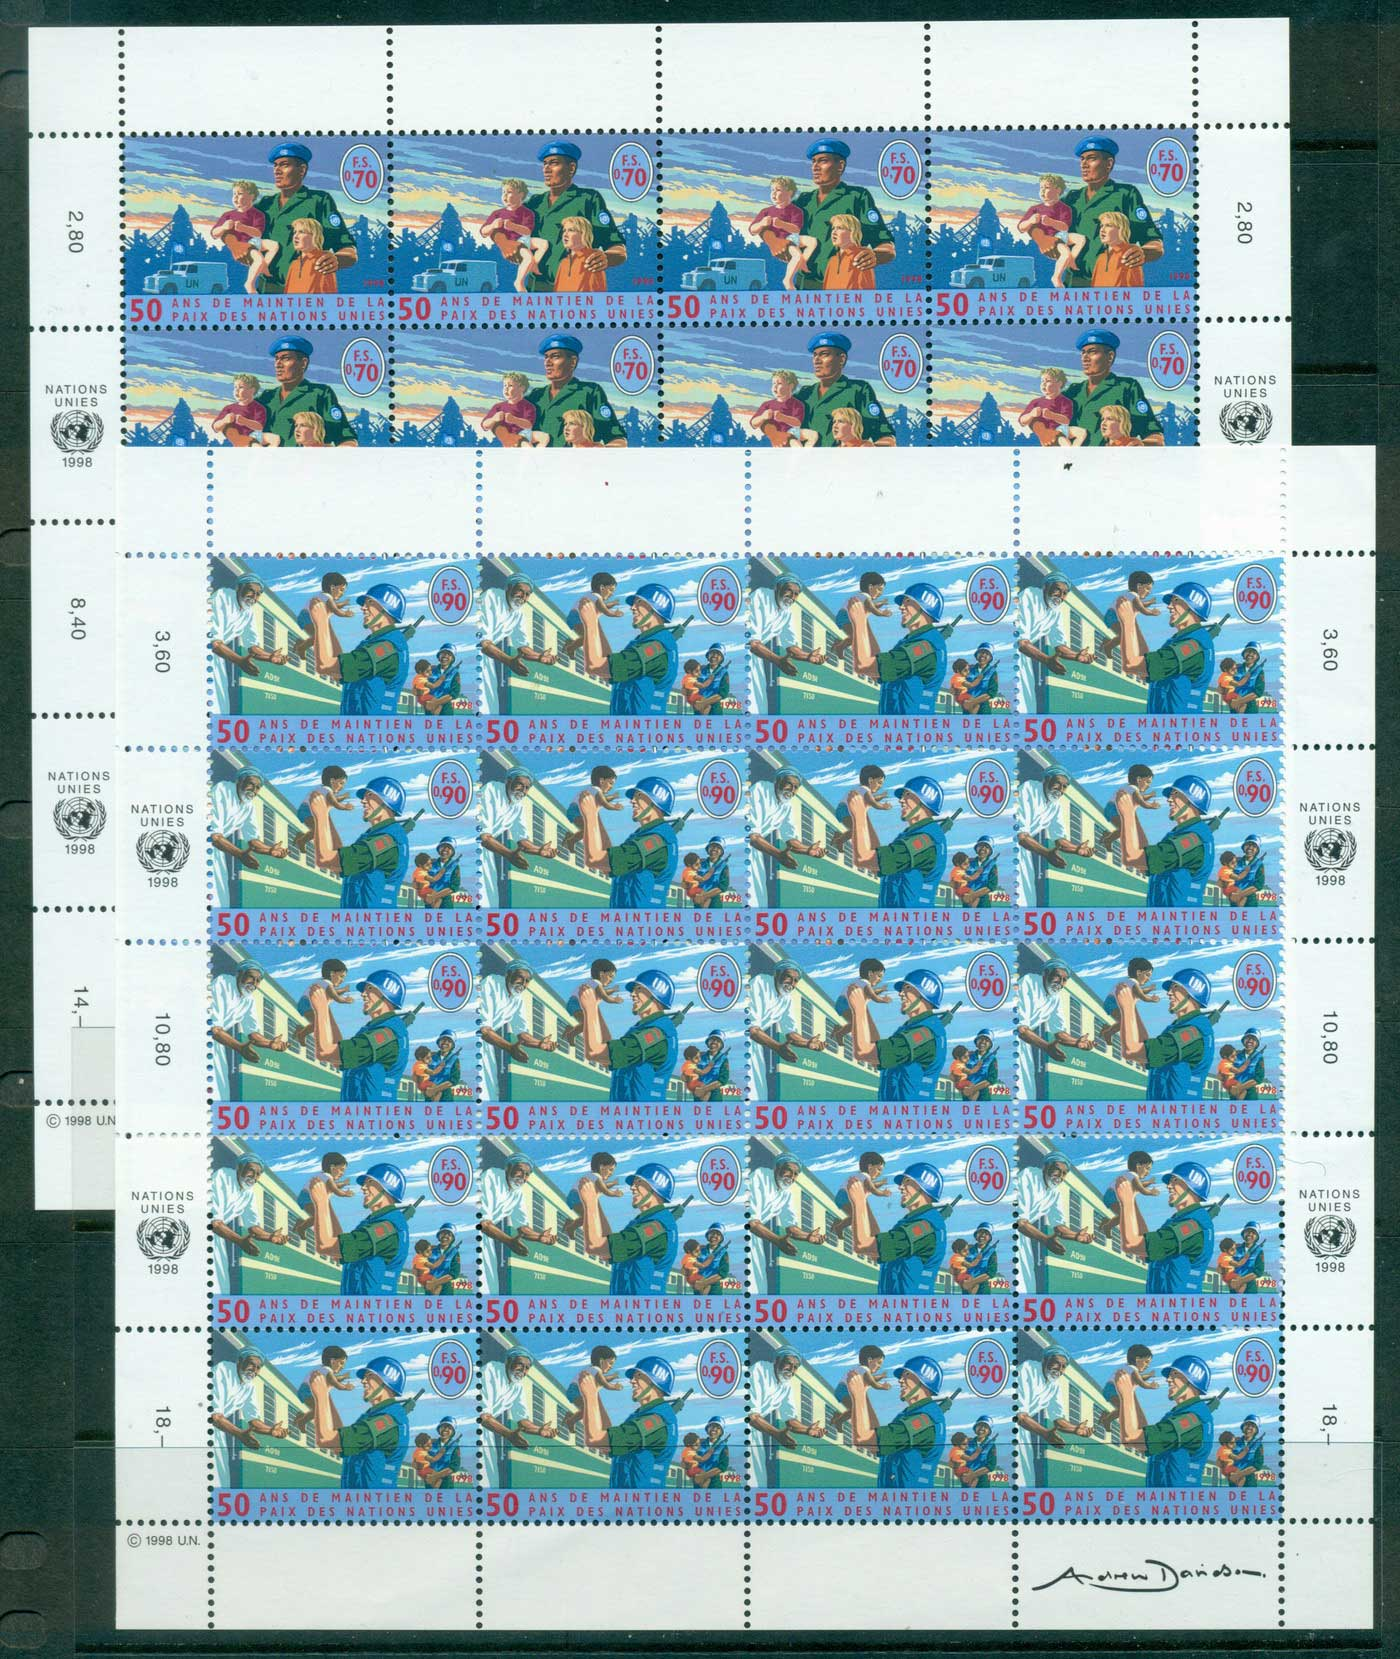 UN Geneva 1998 Peacekeeping Sheets 20 MUH lot40954